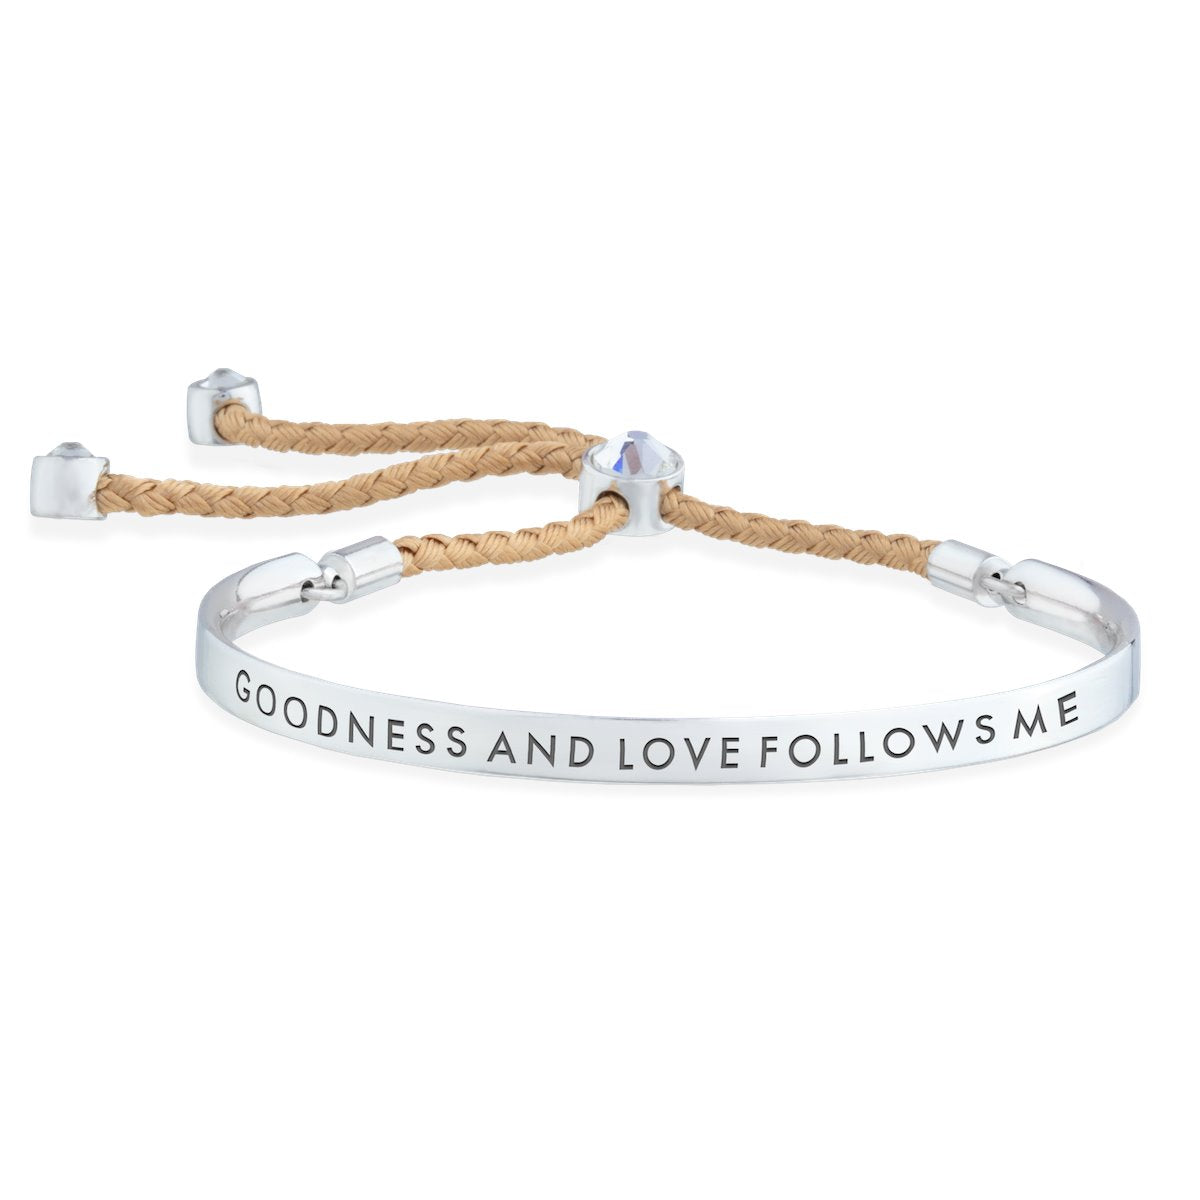 Goodness and Love Follows Me – Words of Empowerment Bracelet forevercrystals